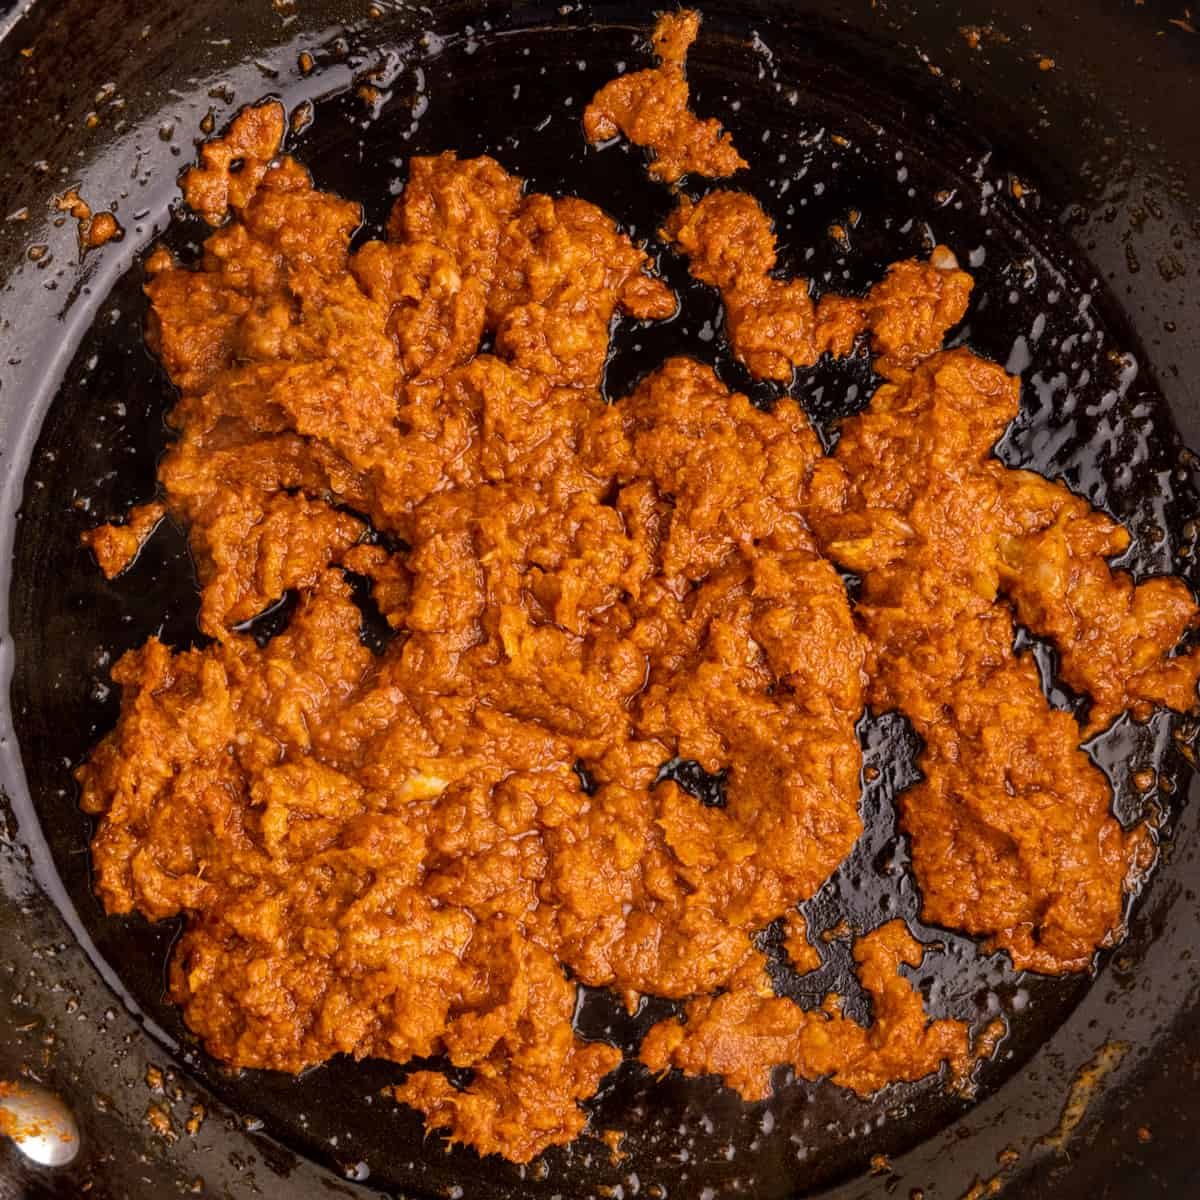 Red Curry paste in a frying pan. The oil is starting to separate from the paste.